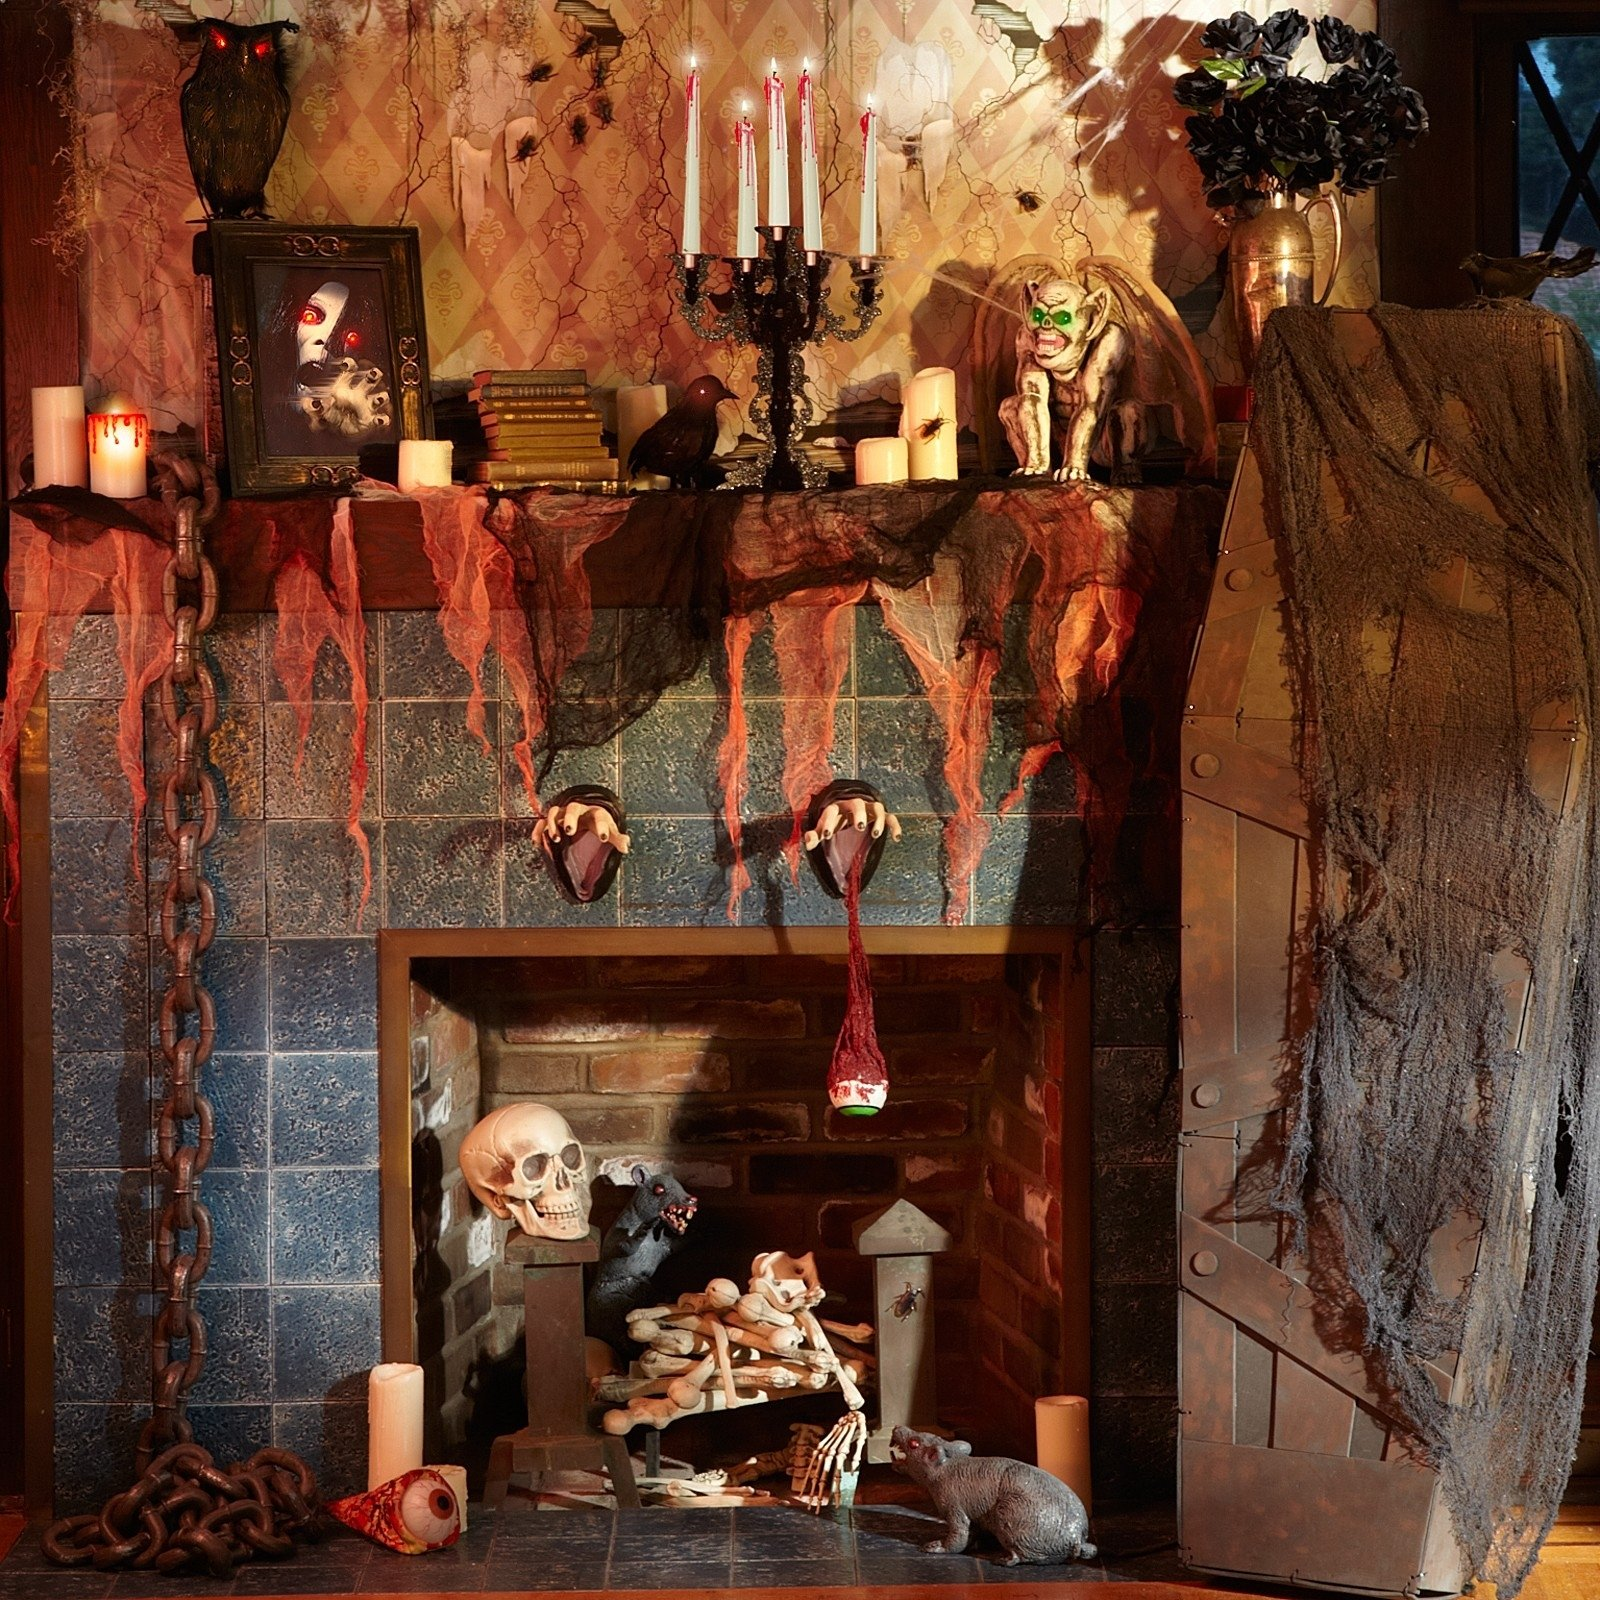 10 Stunning Scary Haunted House Room Ideas house decor for halloween with scary skulls and red creepy drape 2021